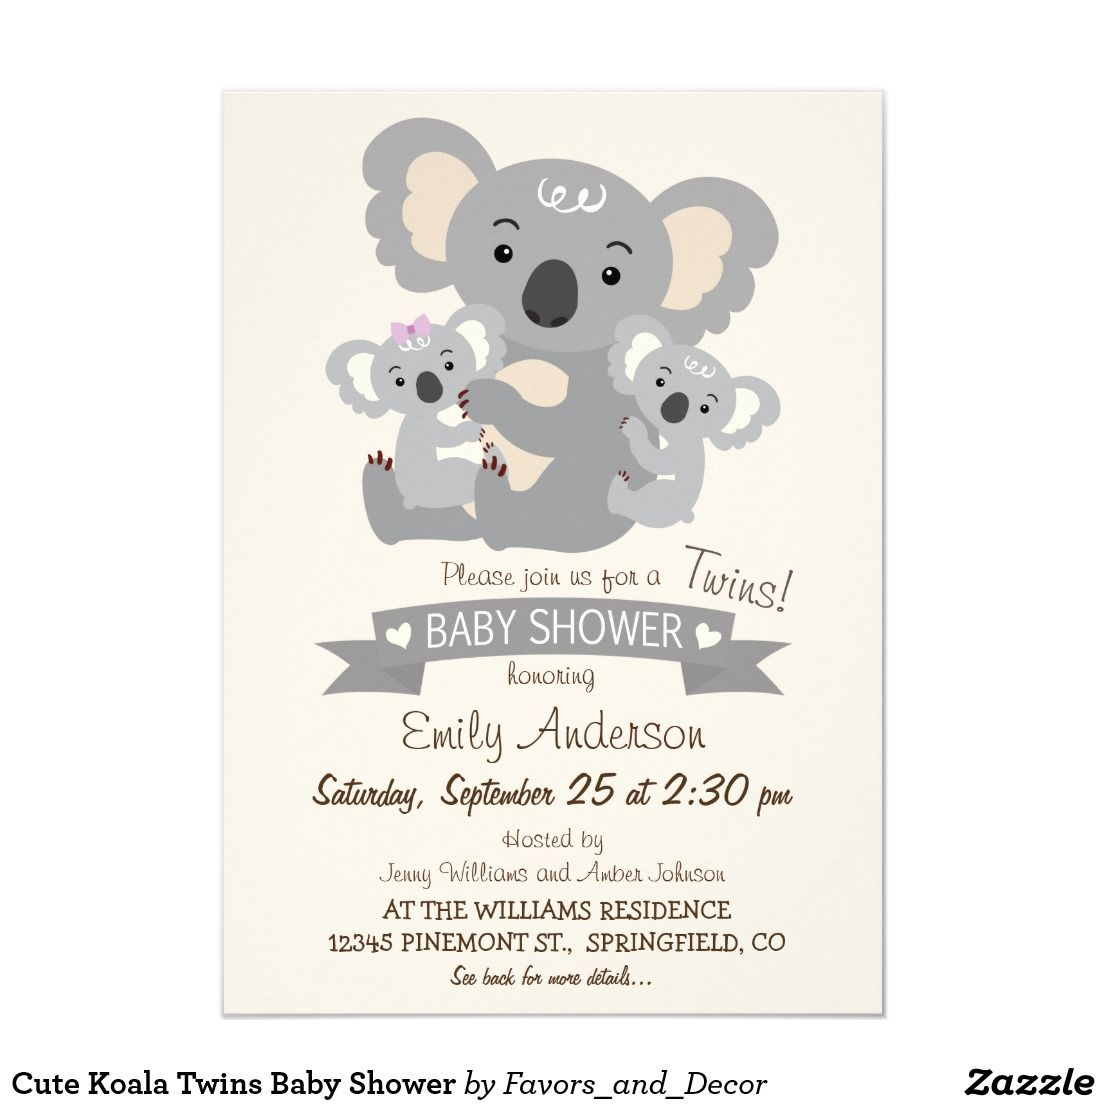 Cute Koala Twins Baby Shower Invitation Zazzle Com Baby